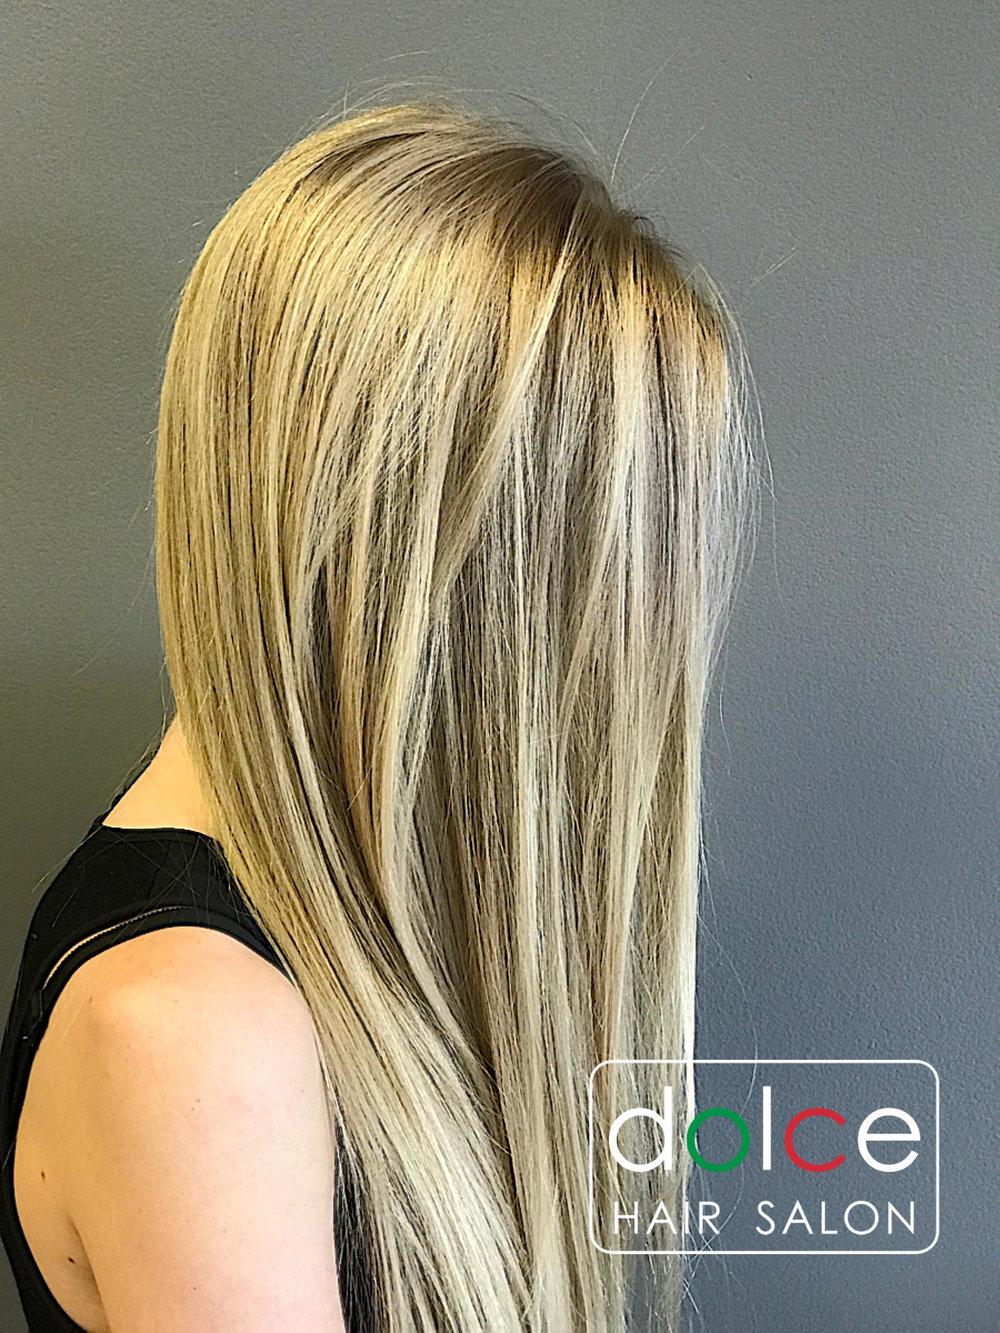 Dolce Hair Salon Pictures natural Shiny Blonde Balayage